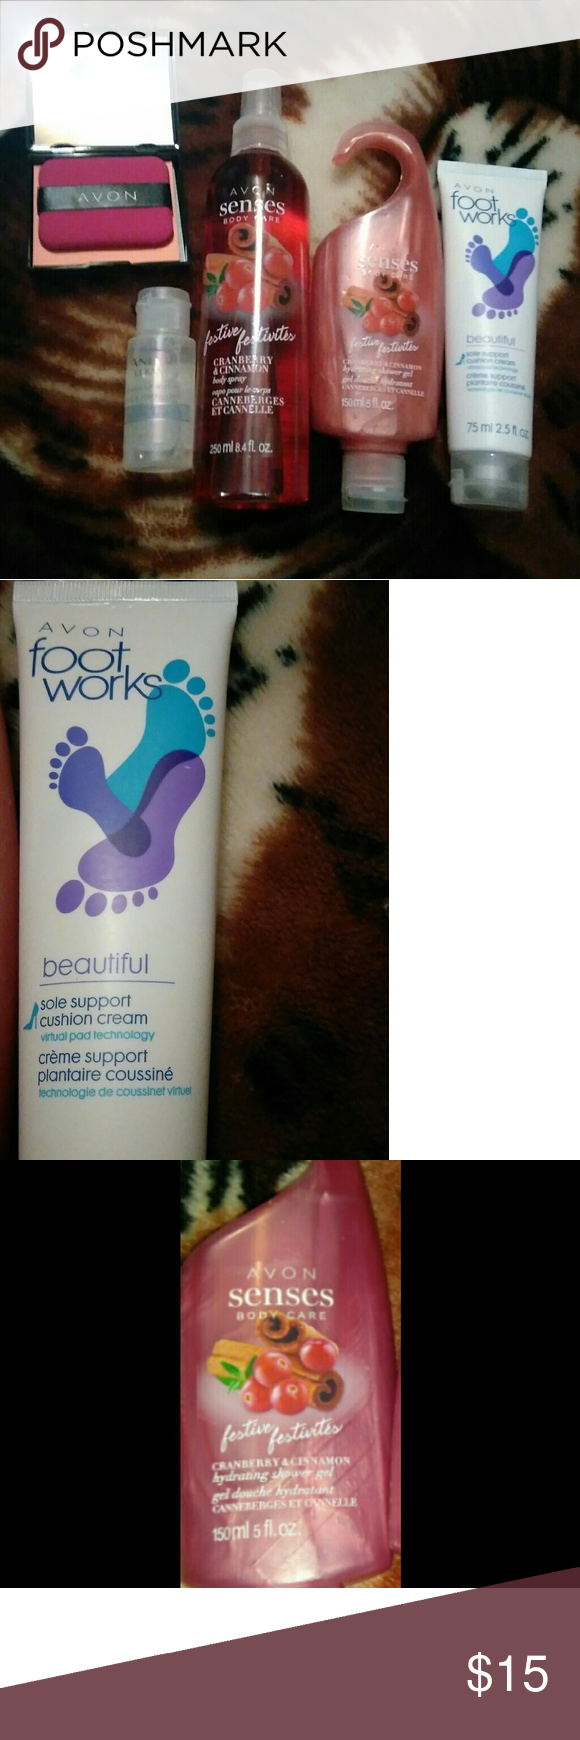 Avon mix Avon mix 5 items...foot cream, facial water